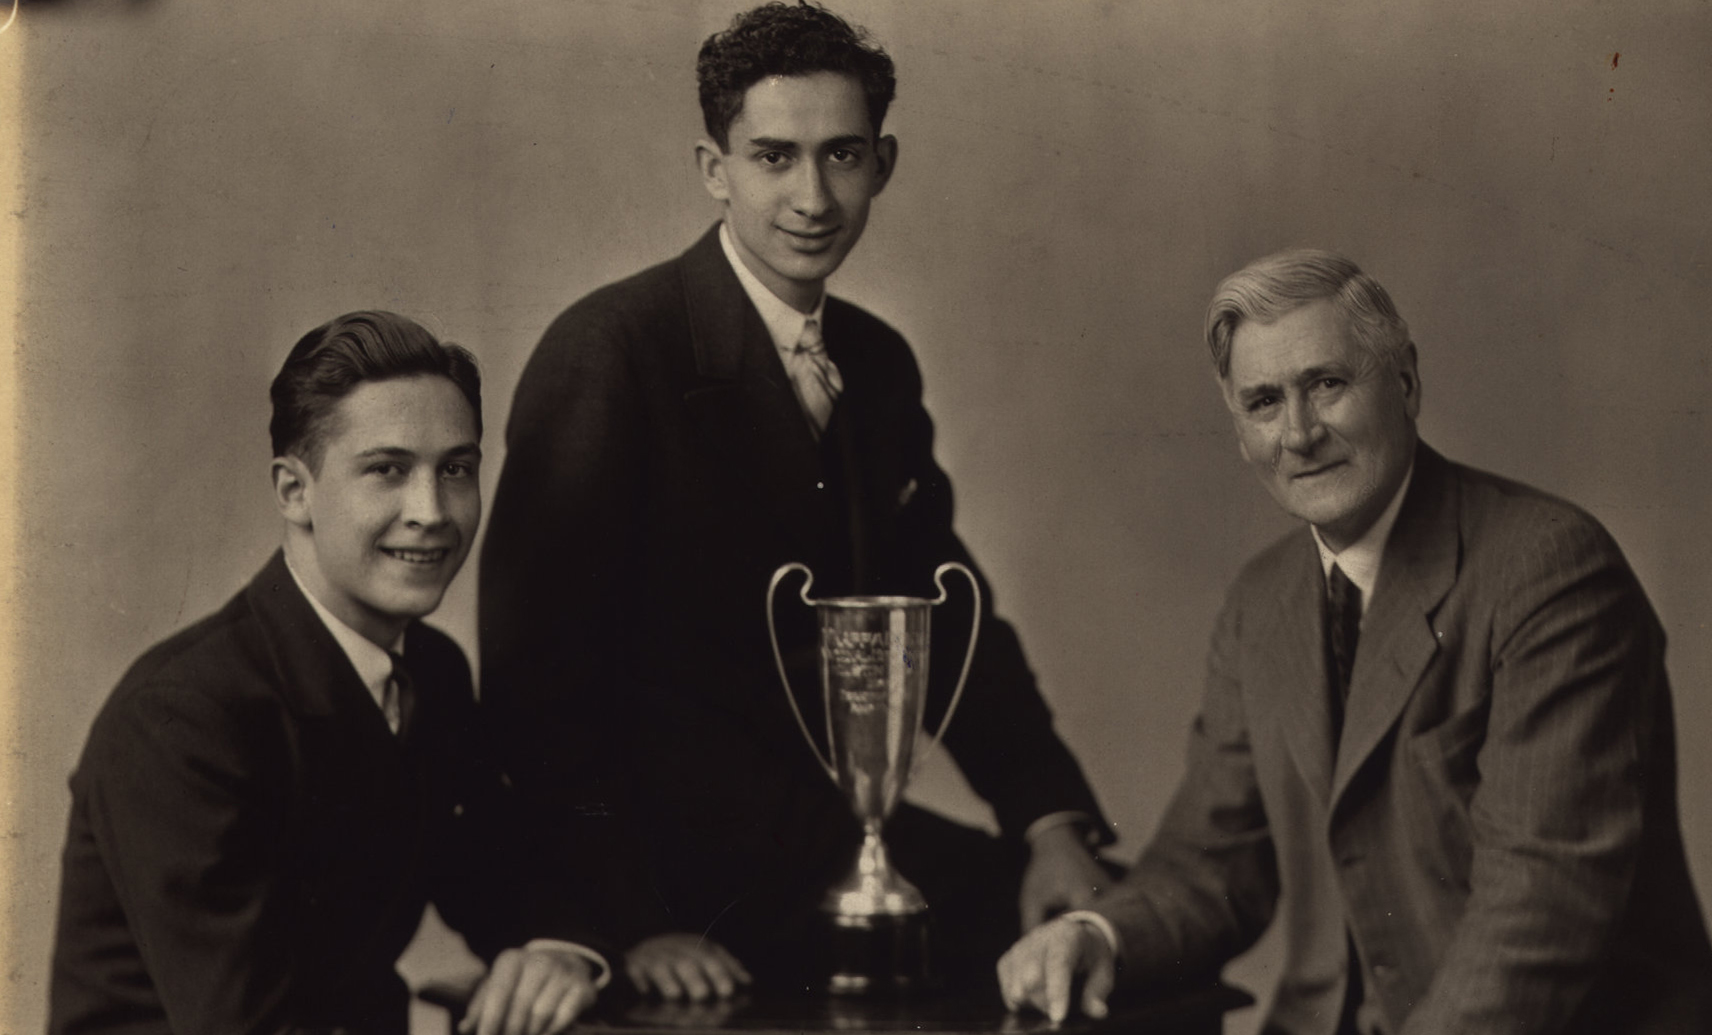 Hon. Robert Sheran (left) was the first recipient of the Distinguished Alumni award. He was on the team that won the Northwest Debate Tournament of 1936, for the College of St. Thomas.  He is shown with Abraham Kaplan and their advisor, Professor Owen McElmeel, and the winner's trophy.